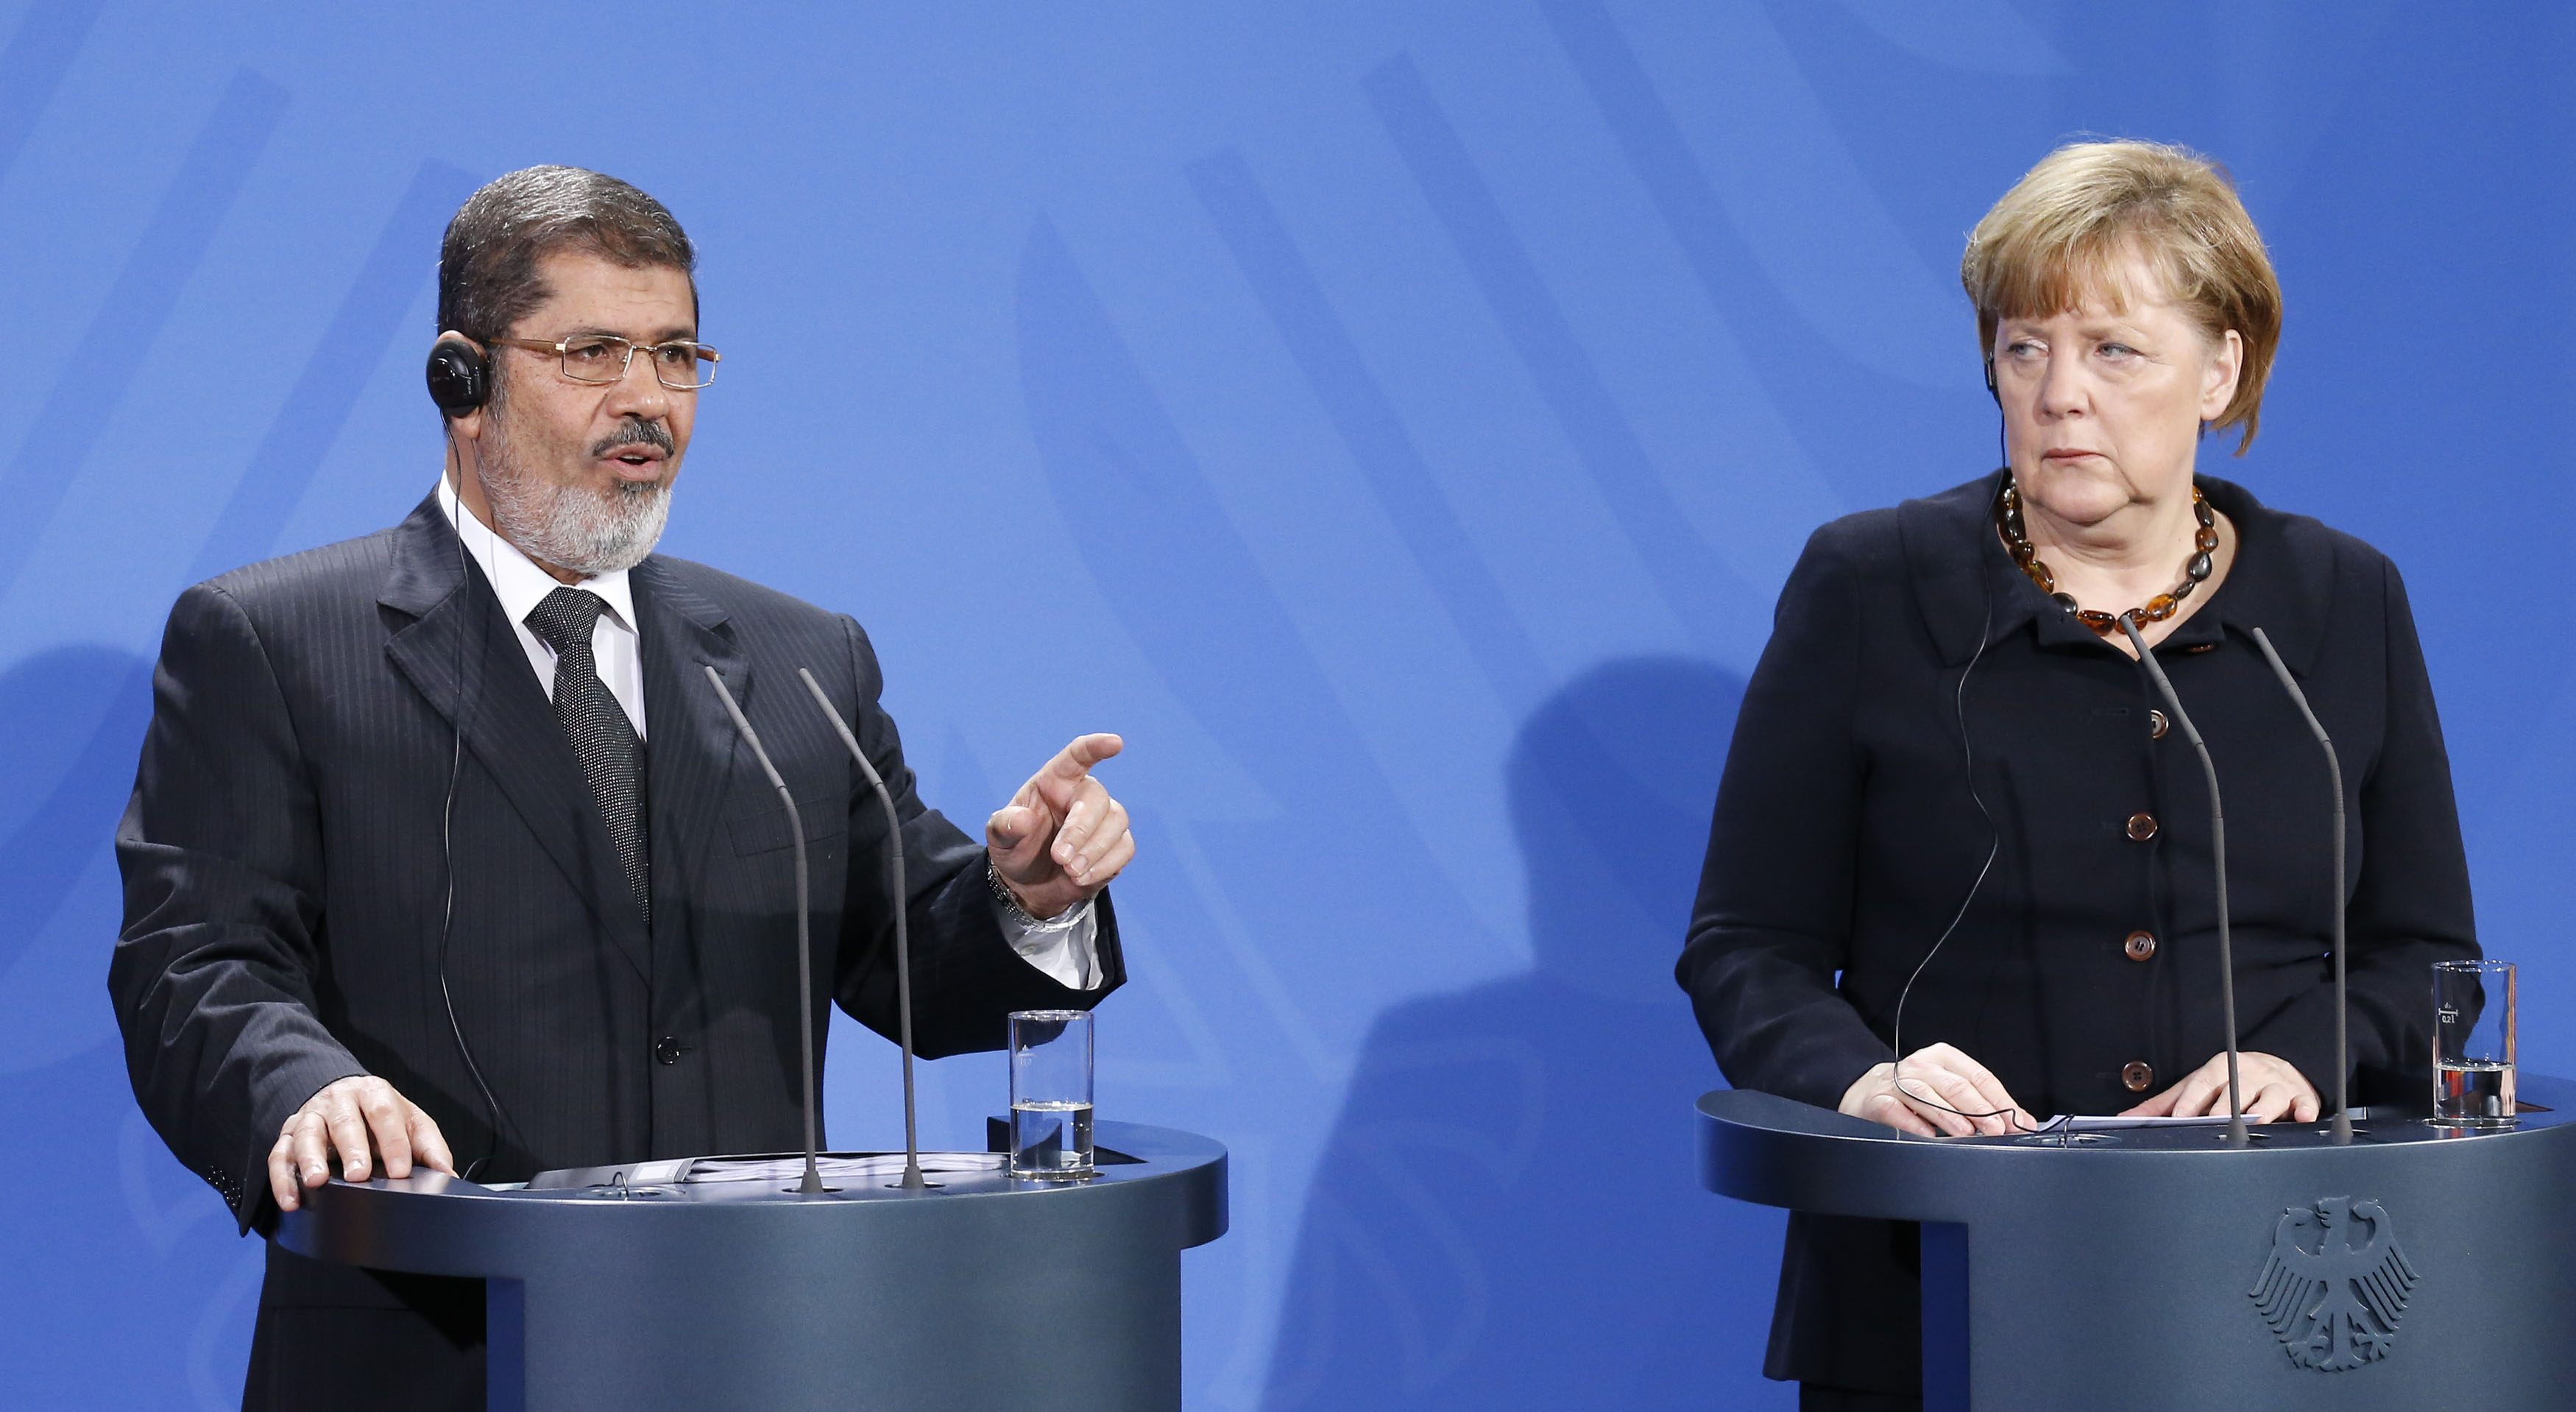 Update - Merkel urges Egypt's Mursi to hold crisis dialogue